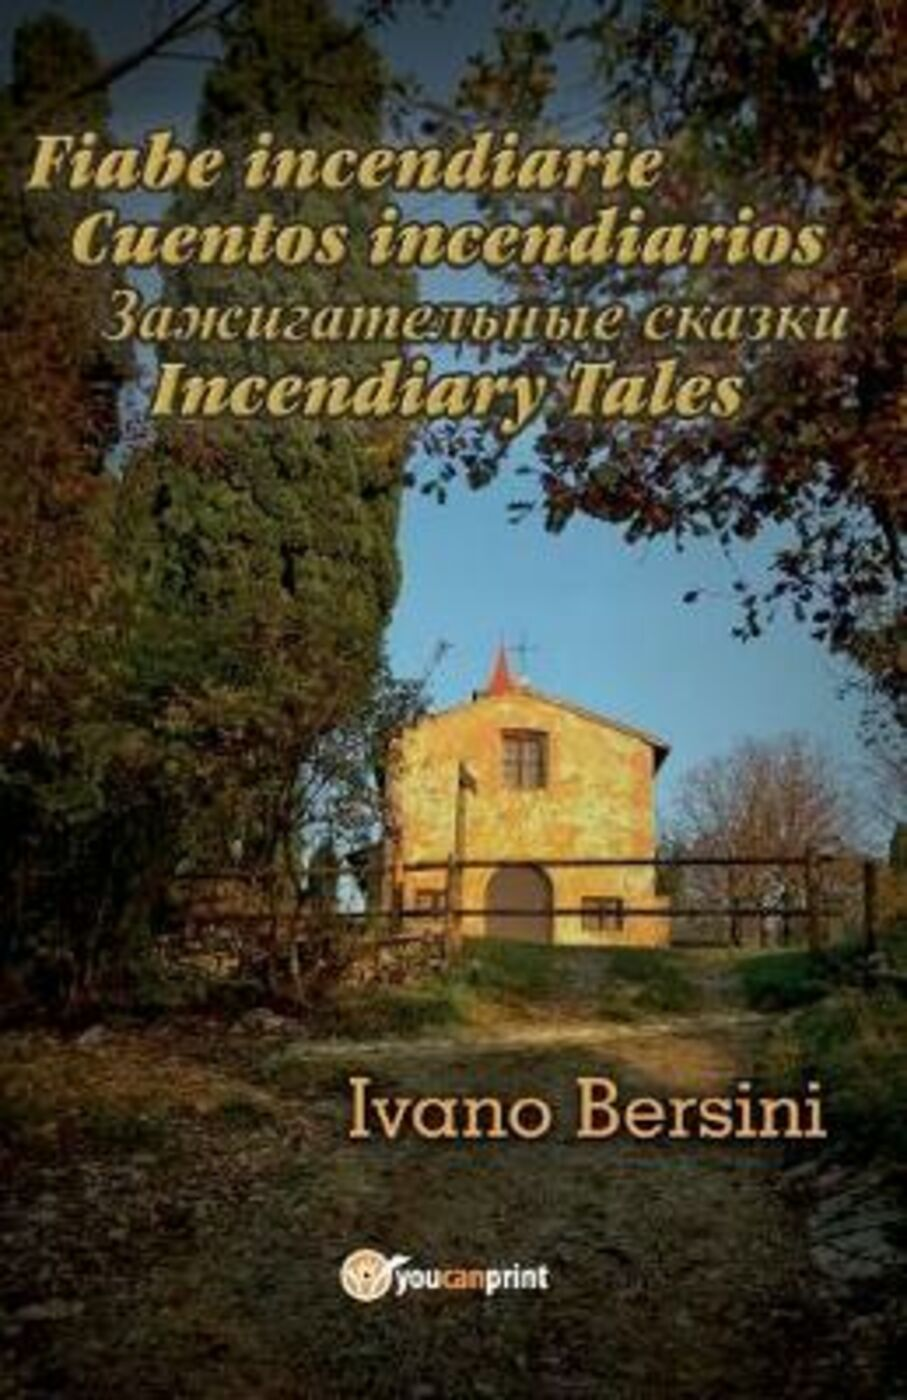 Fiabe incendiarie-Cuentos incendiarios-Incendiary tales